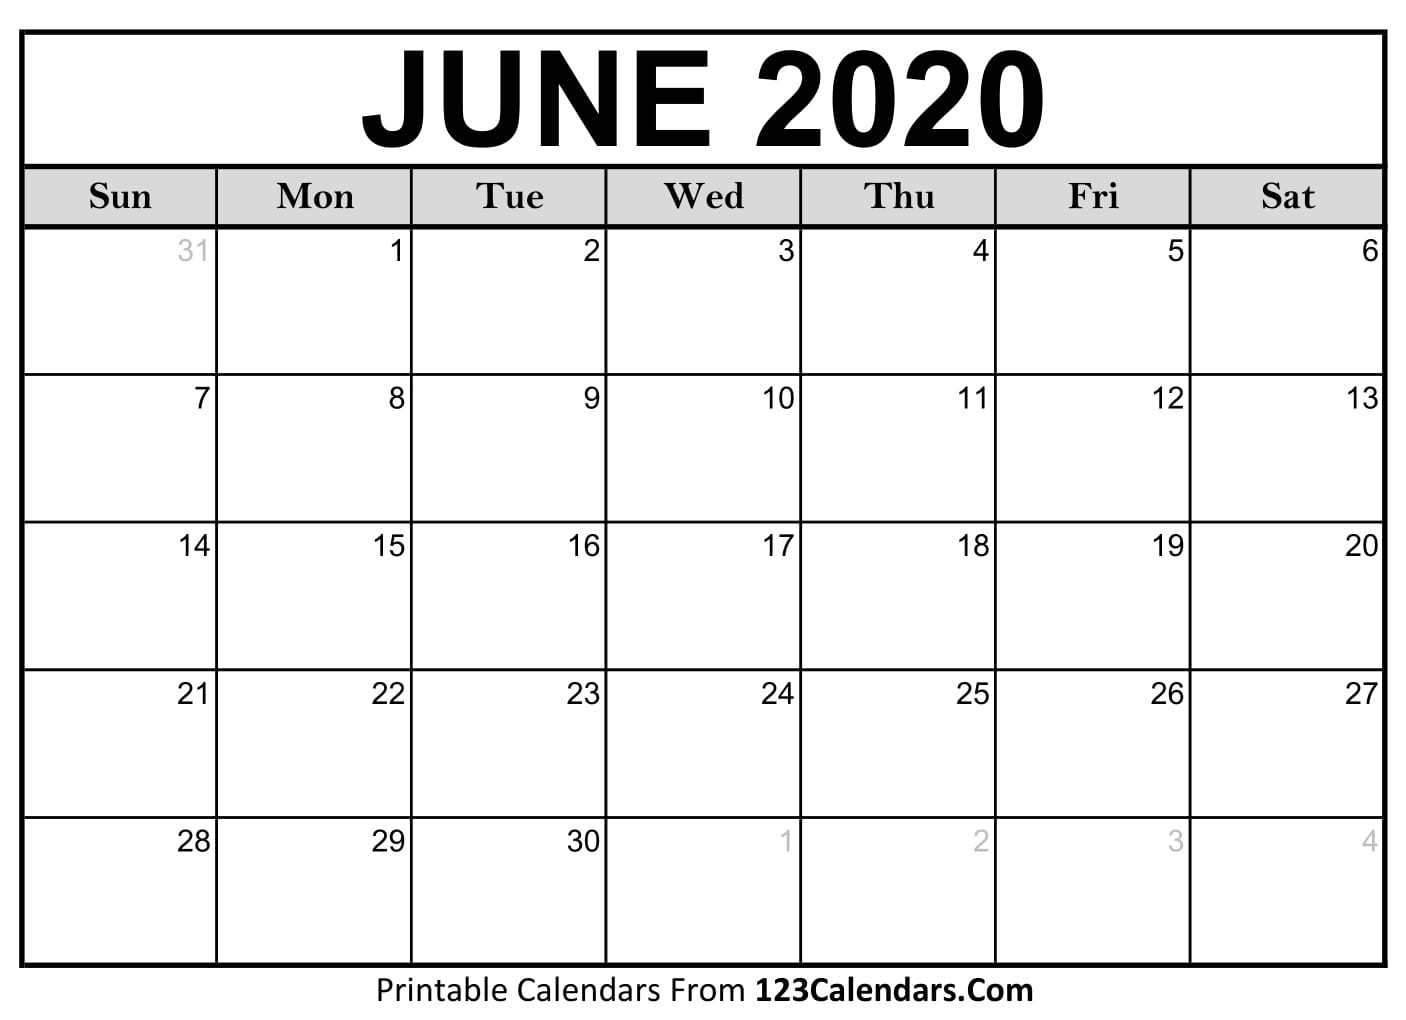 June 2020 Printable Calendar | 123Calendars-Blank Customizable June Calendar Template 2020